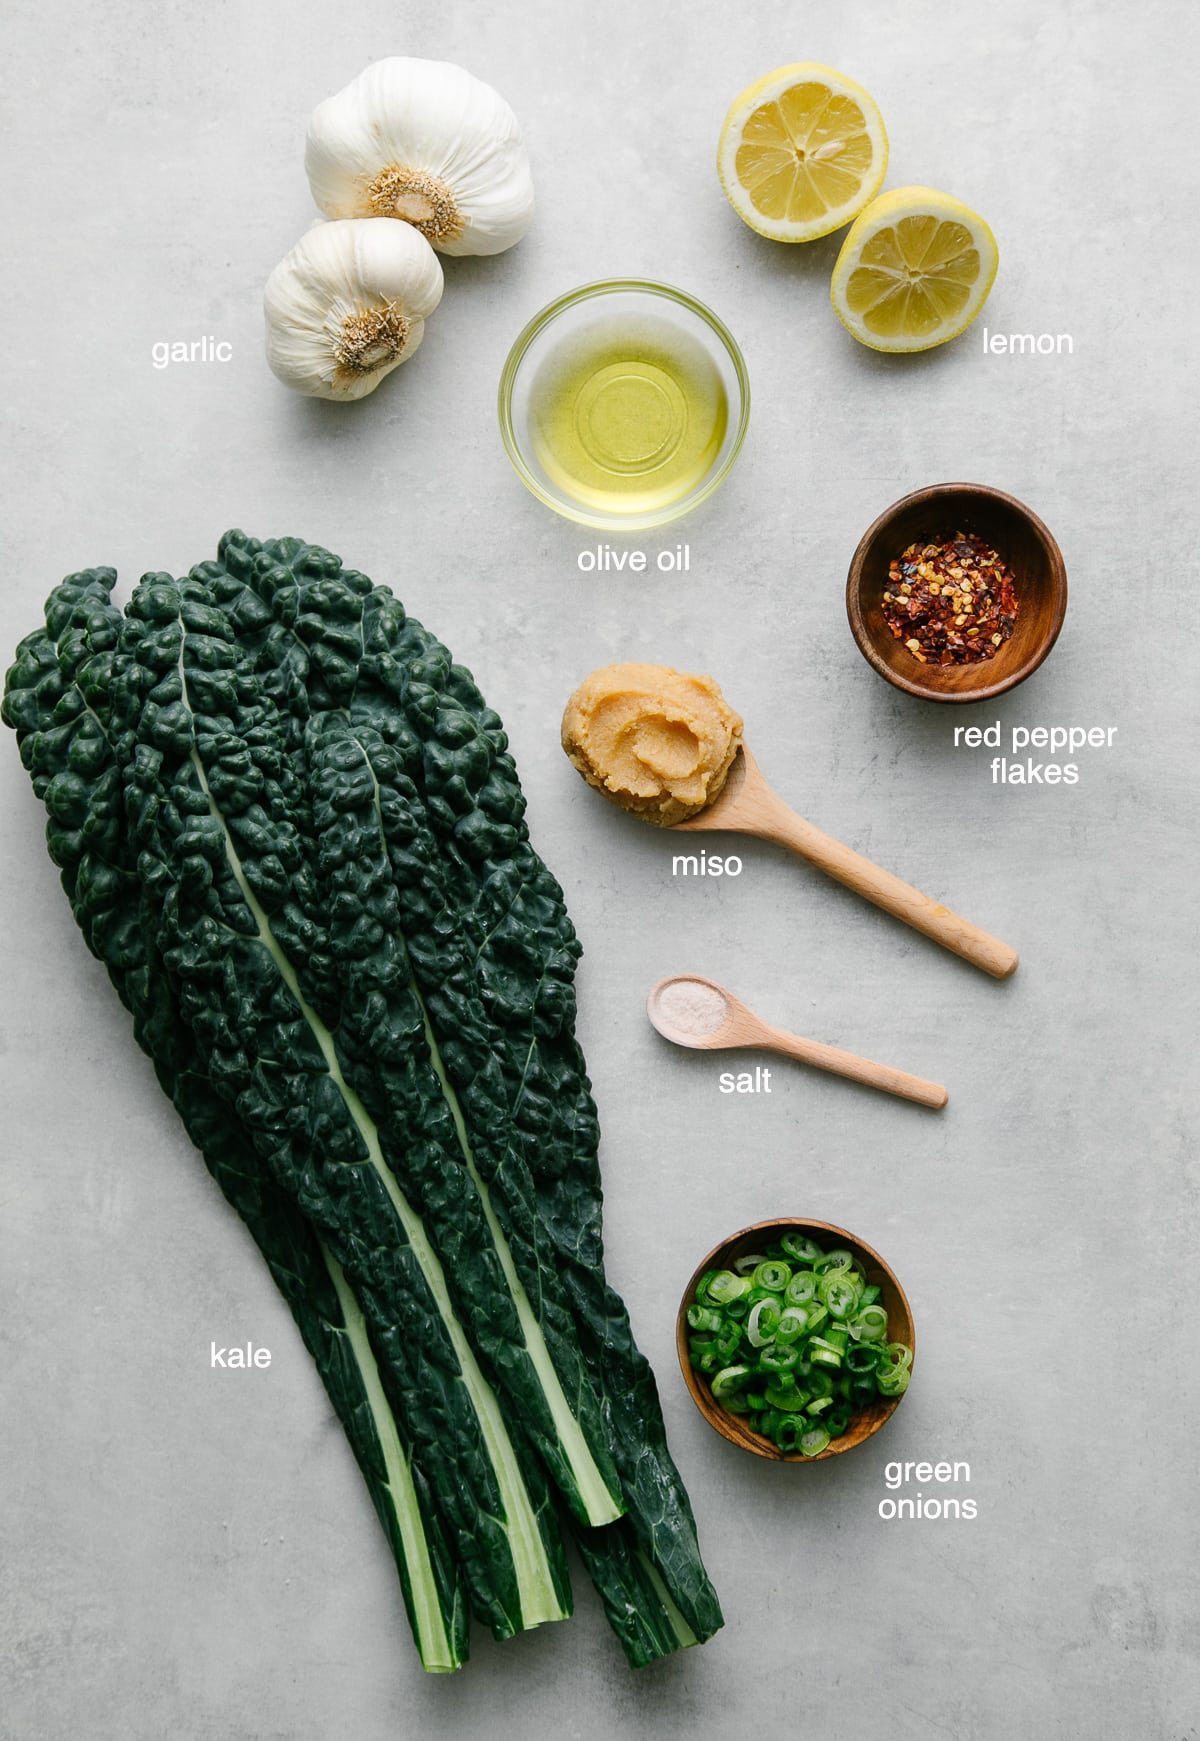 top down view of ingredients used to make vegan miso soup with garlic and kale.